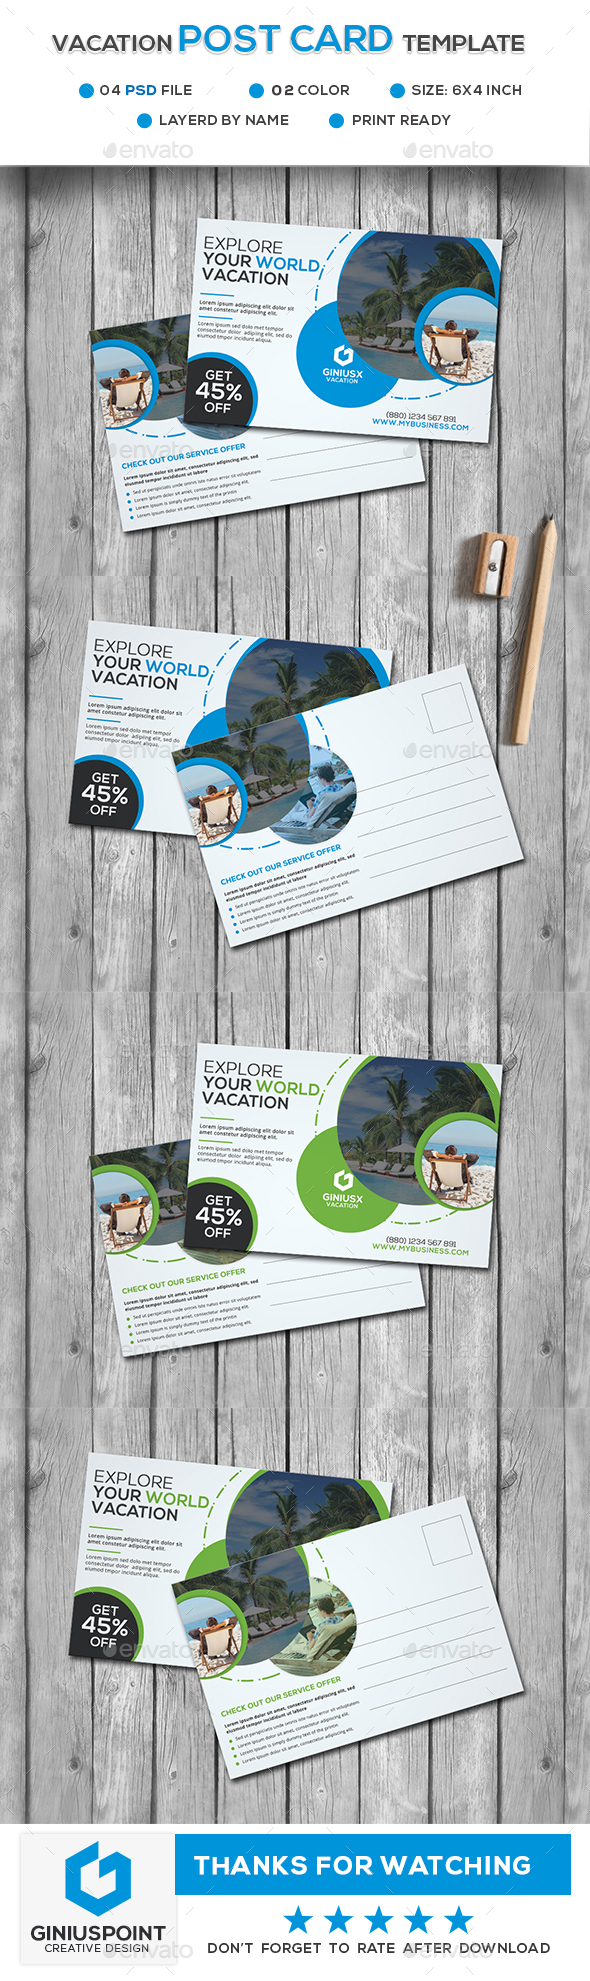 Vacation Post Card Tamplate - Cards & Invites Print Templates